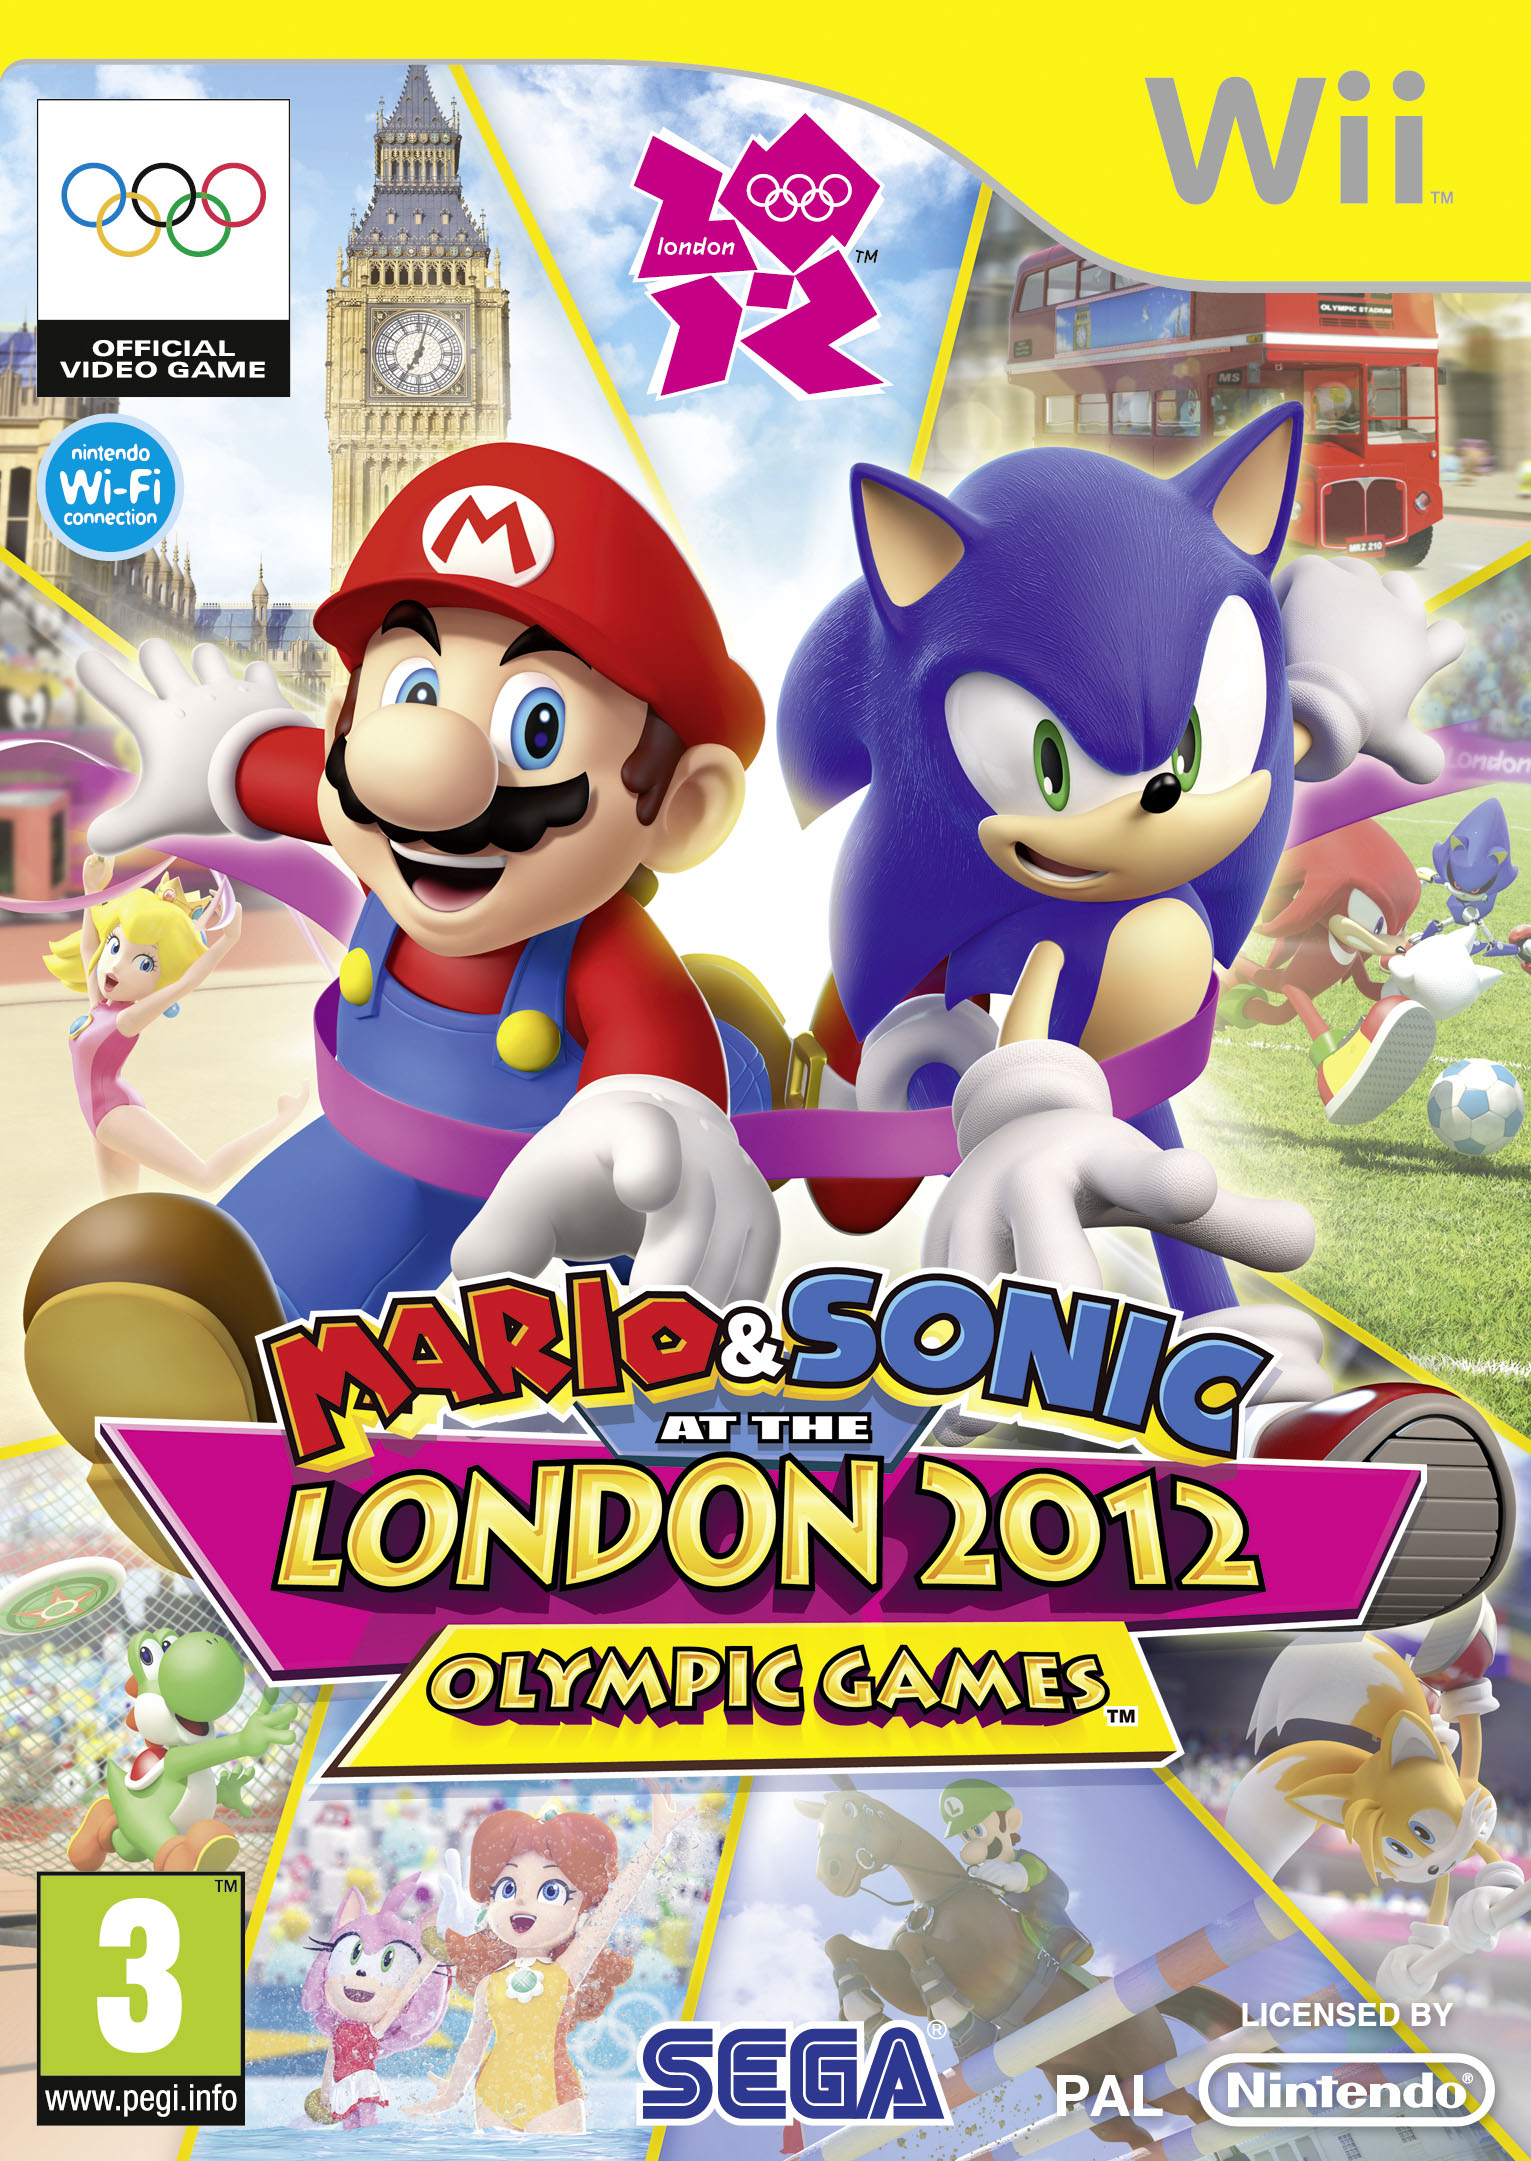 mario games mario sonic london 2012 olympic games game clue